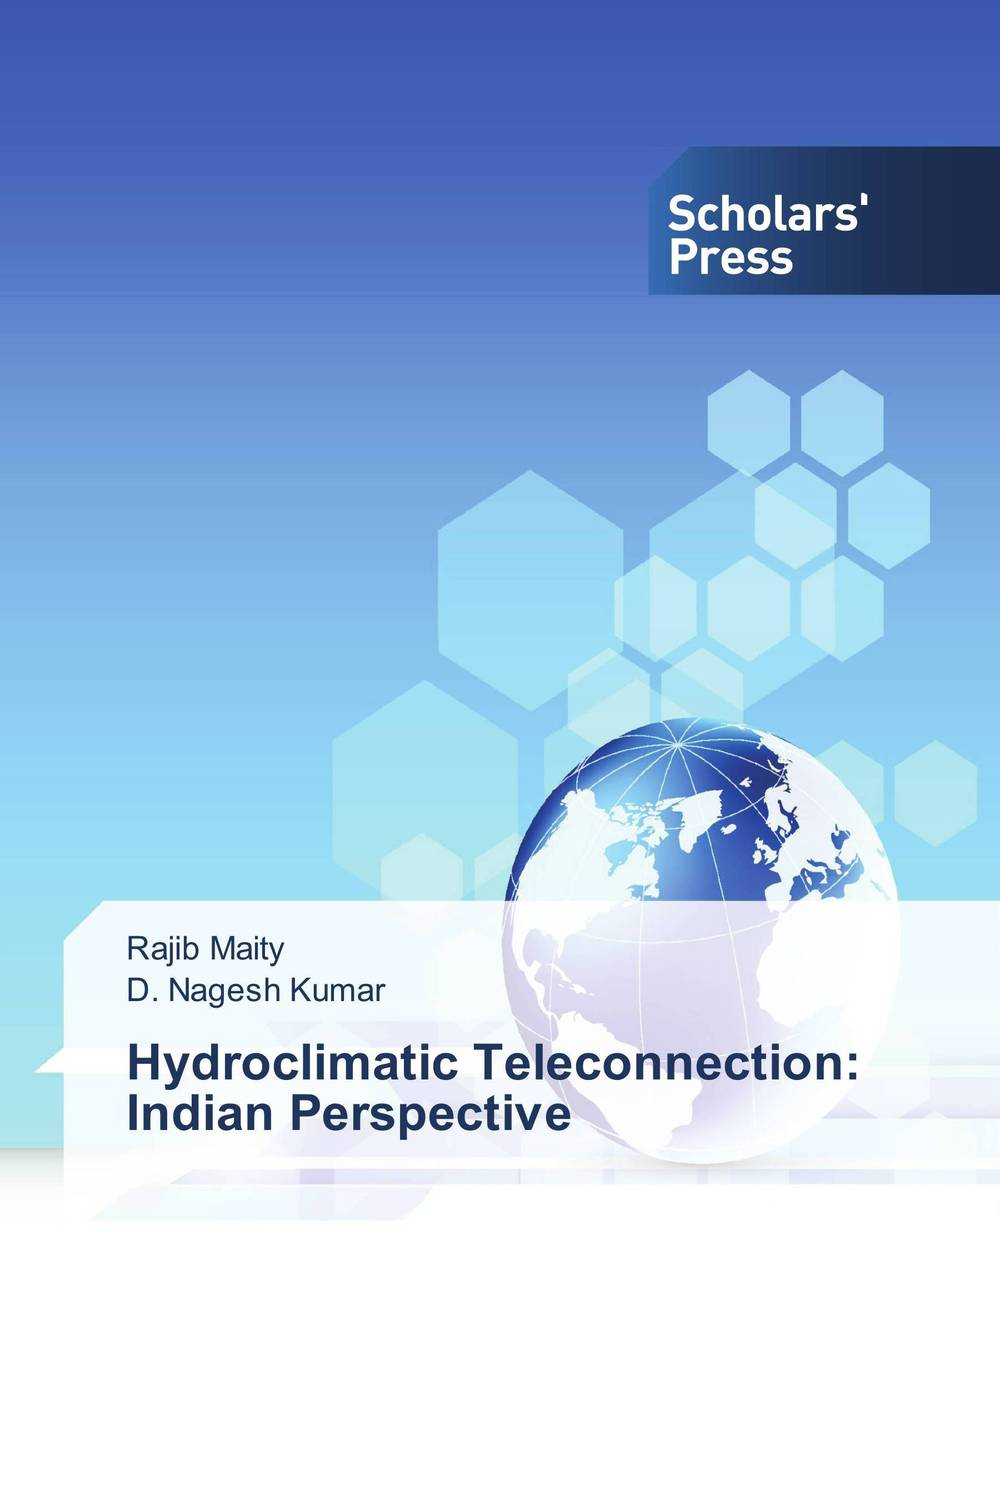 Hydroclimatic Teleconnection: Indian Perspective jinma 454 tractor parts the set of bolts with nuts and washers of power steering front axle part number